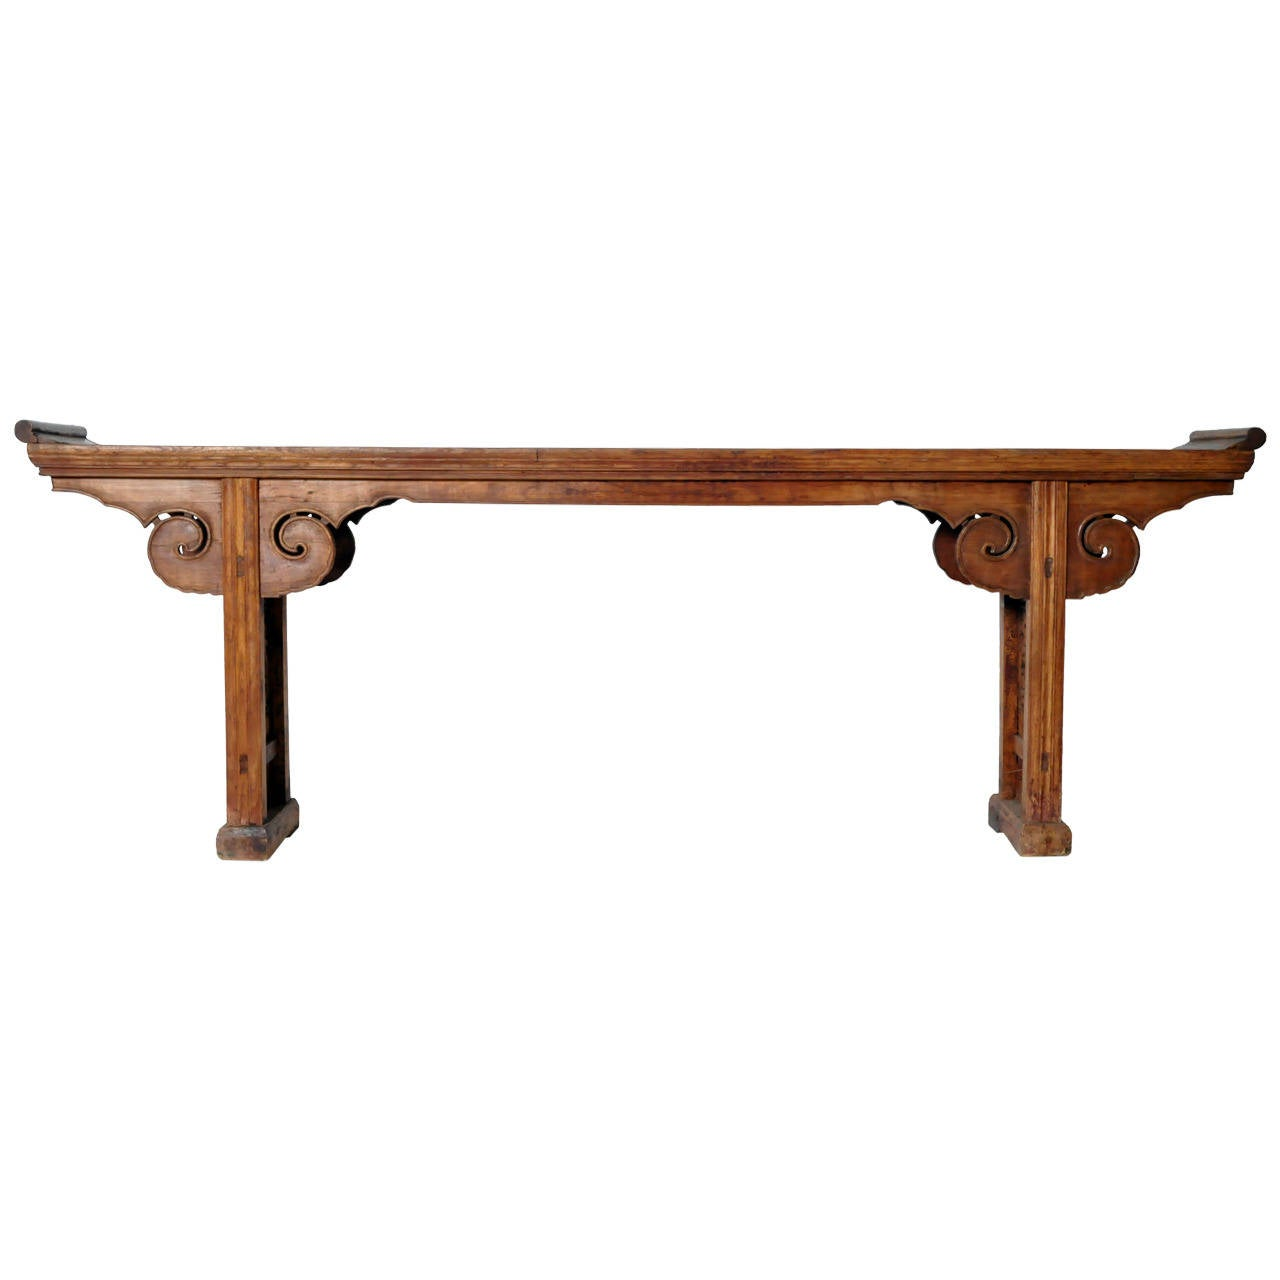 Chinese elm wood altar table at 1stdibs for Wood in chinese